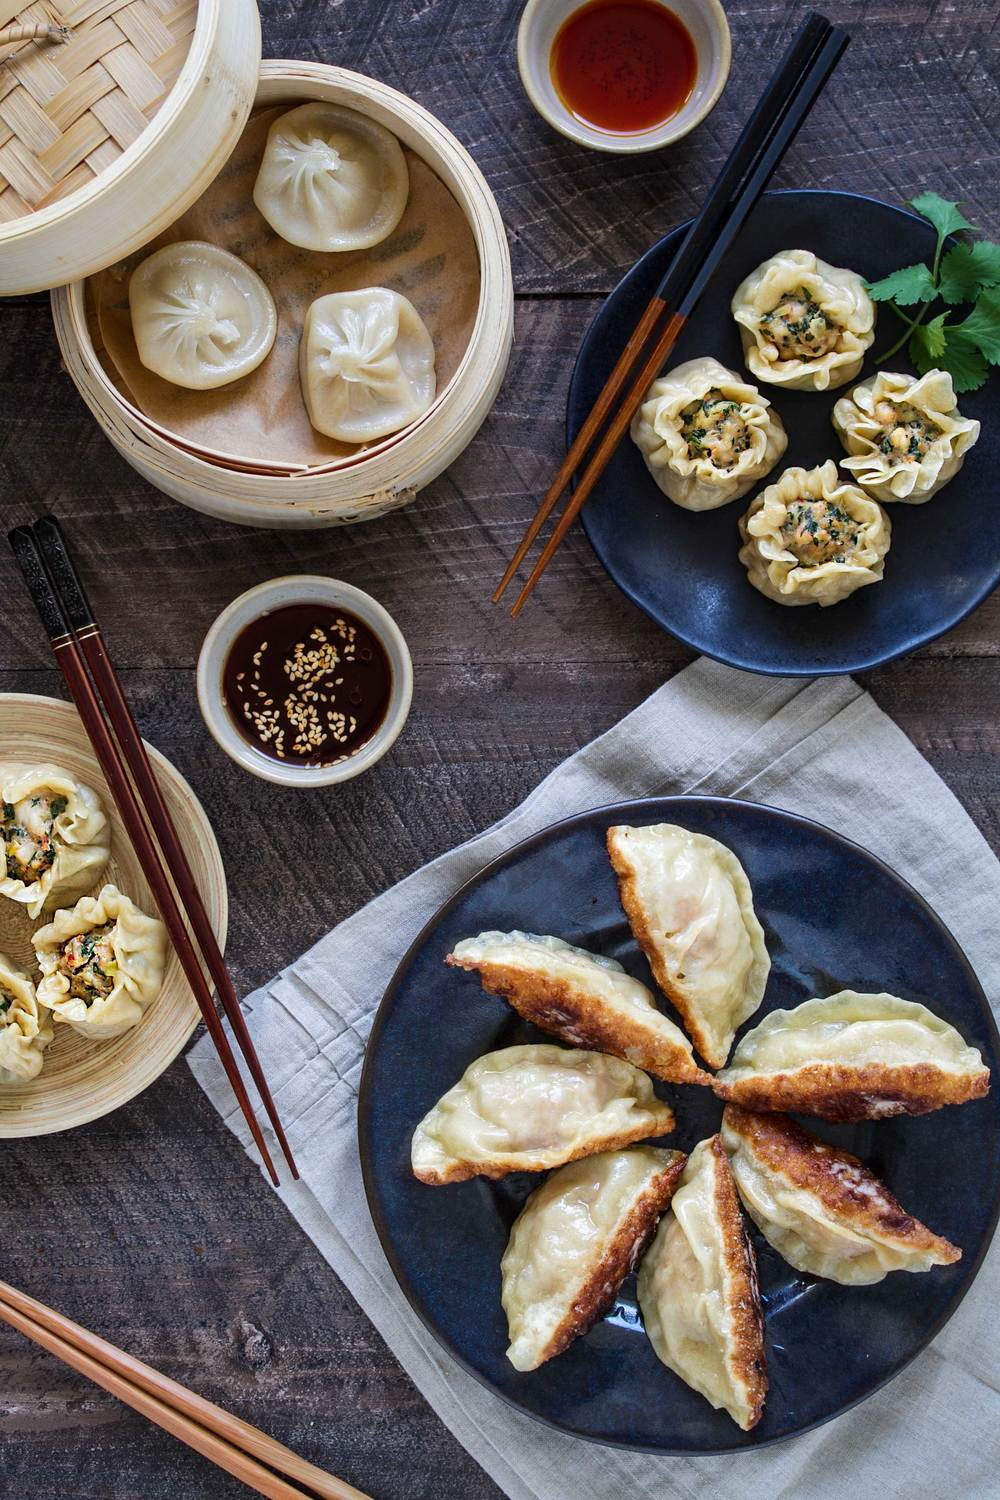 potstickers and homemade dumplings